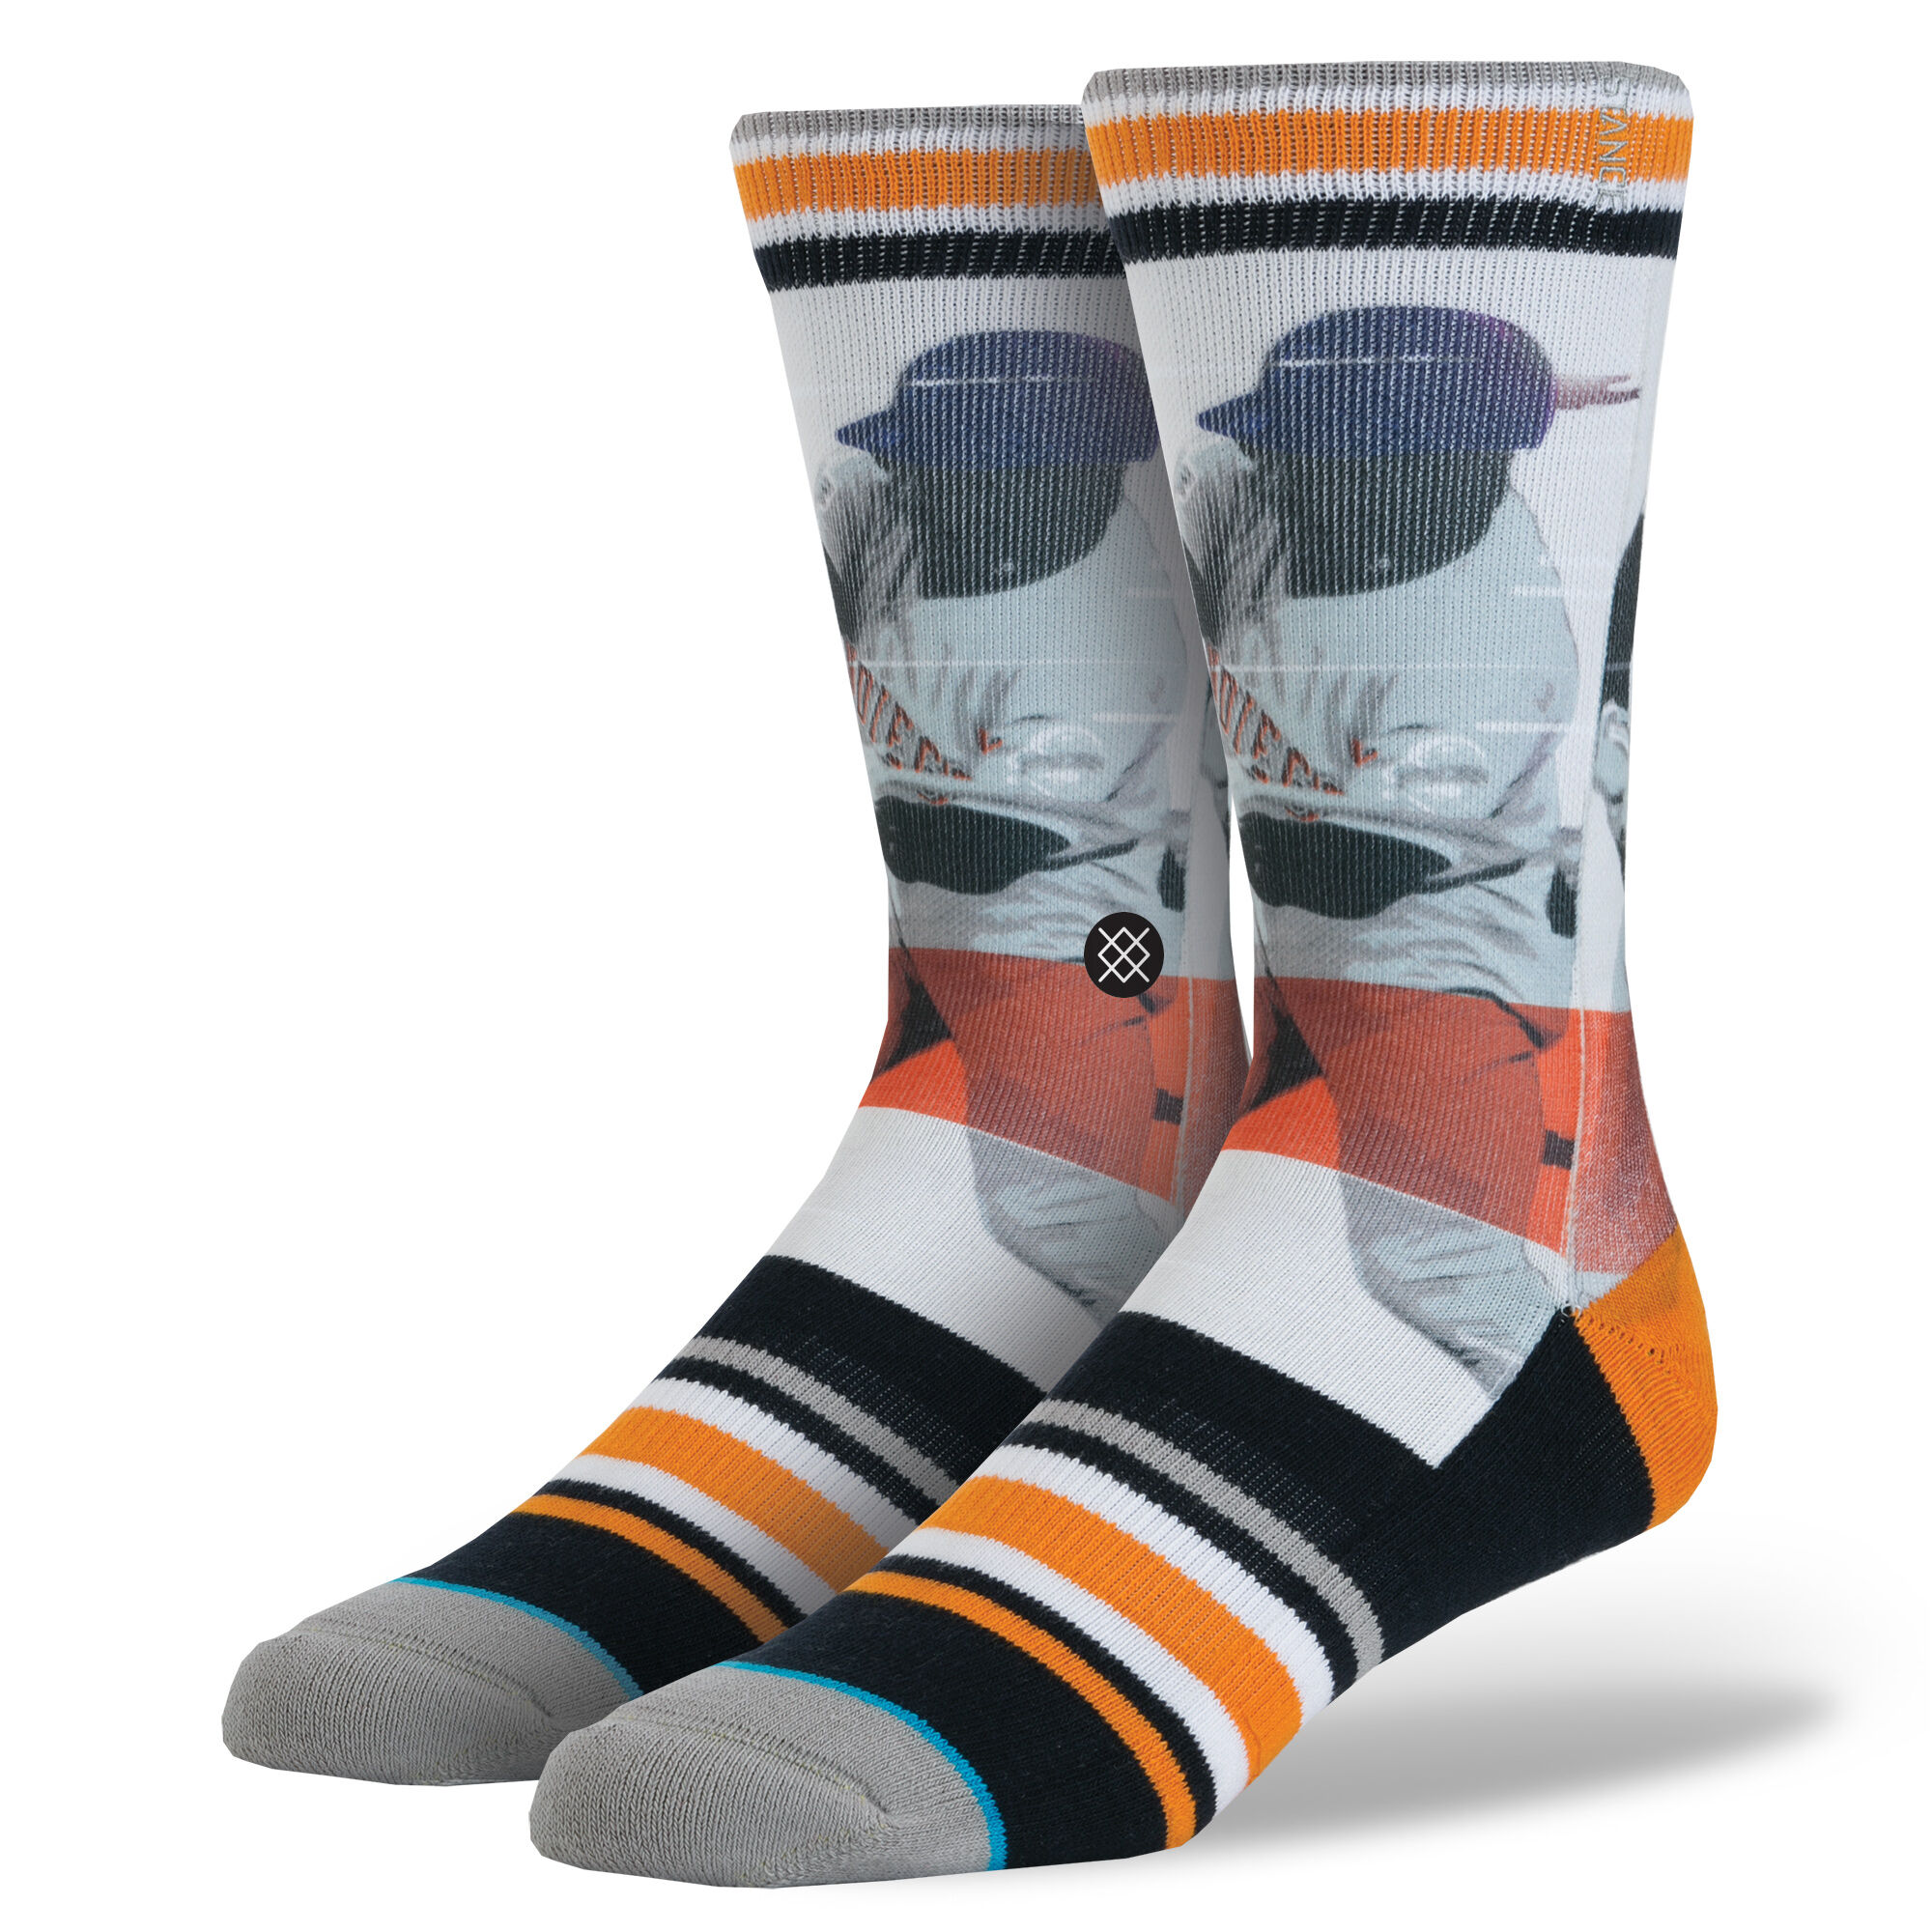 Padre Mens Mlb Legends Socks Stance